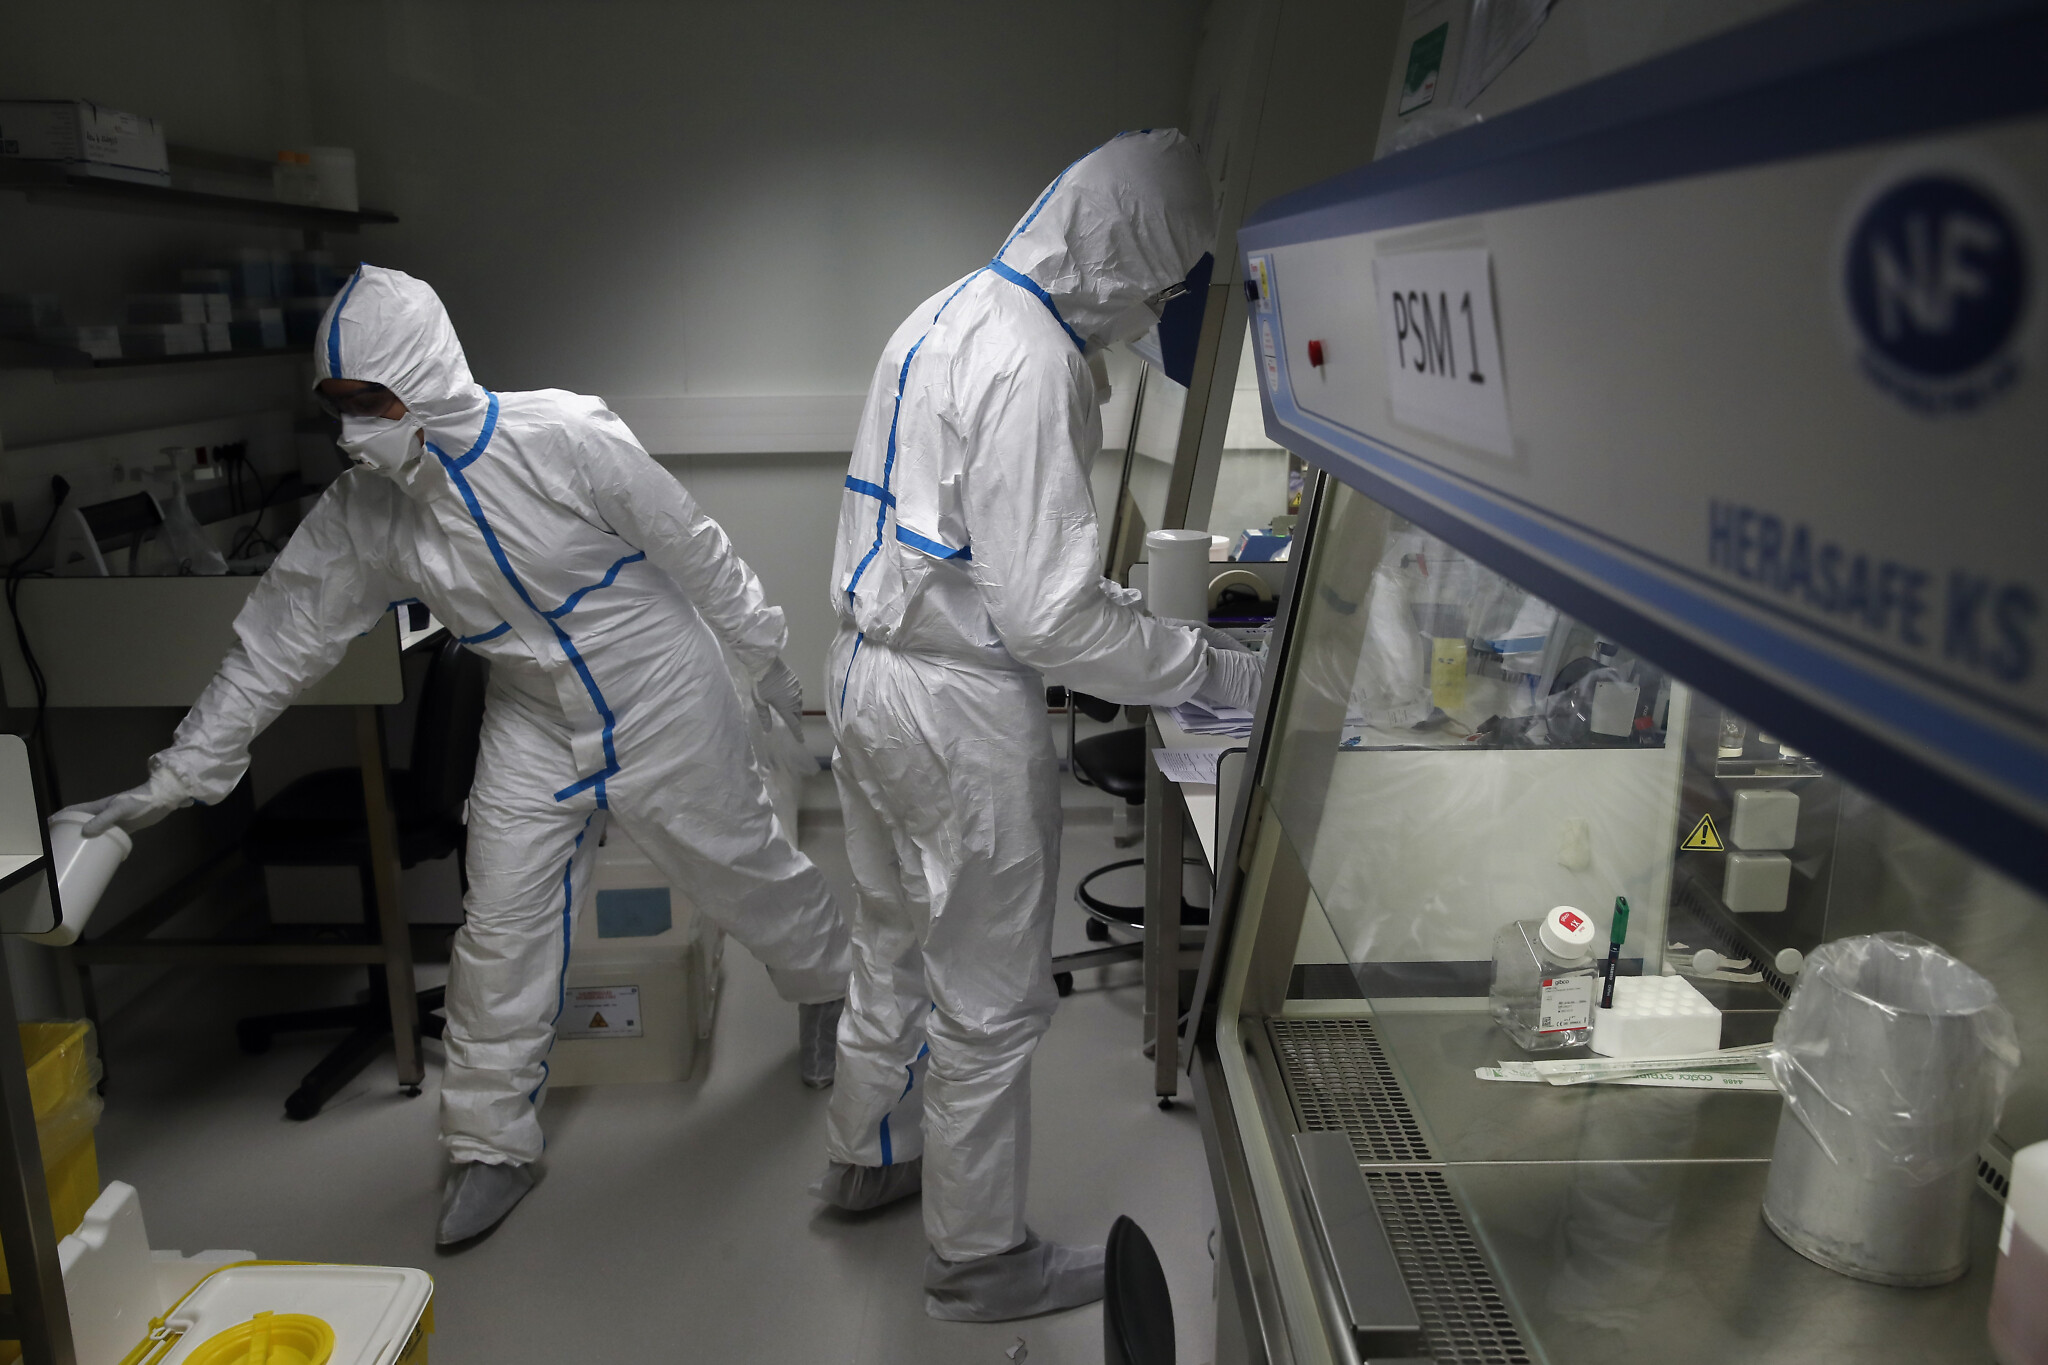 2 more die in France of coronavirus, bringing toll to 4   The ...